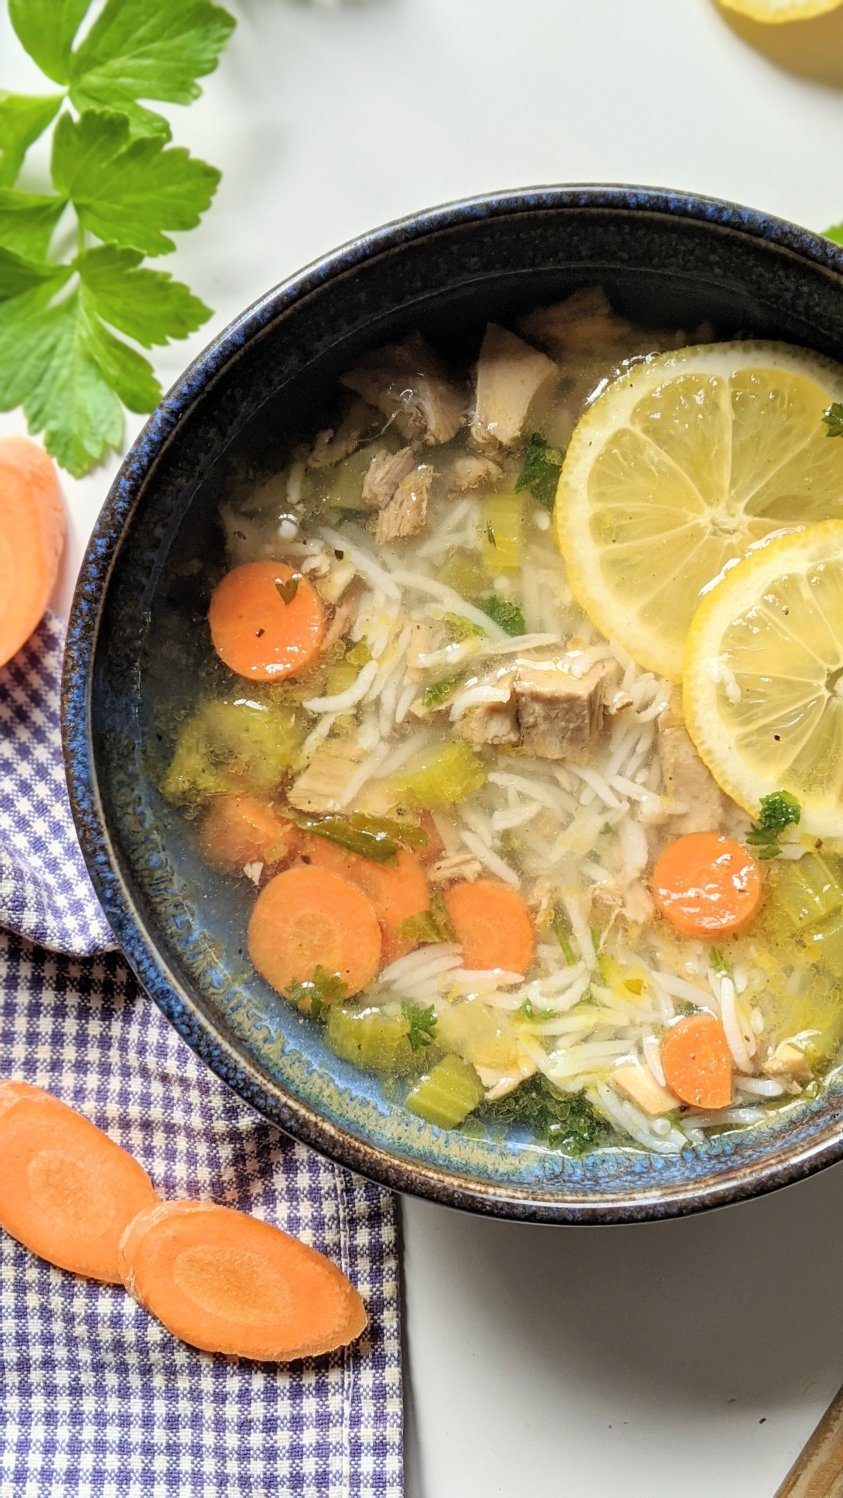 healthy soup recipes with turkey leftovers thanksgiving soup recipes turkey lemon rice turkey avgolemono egg free recipes gluten free non dairy recipes with turkey